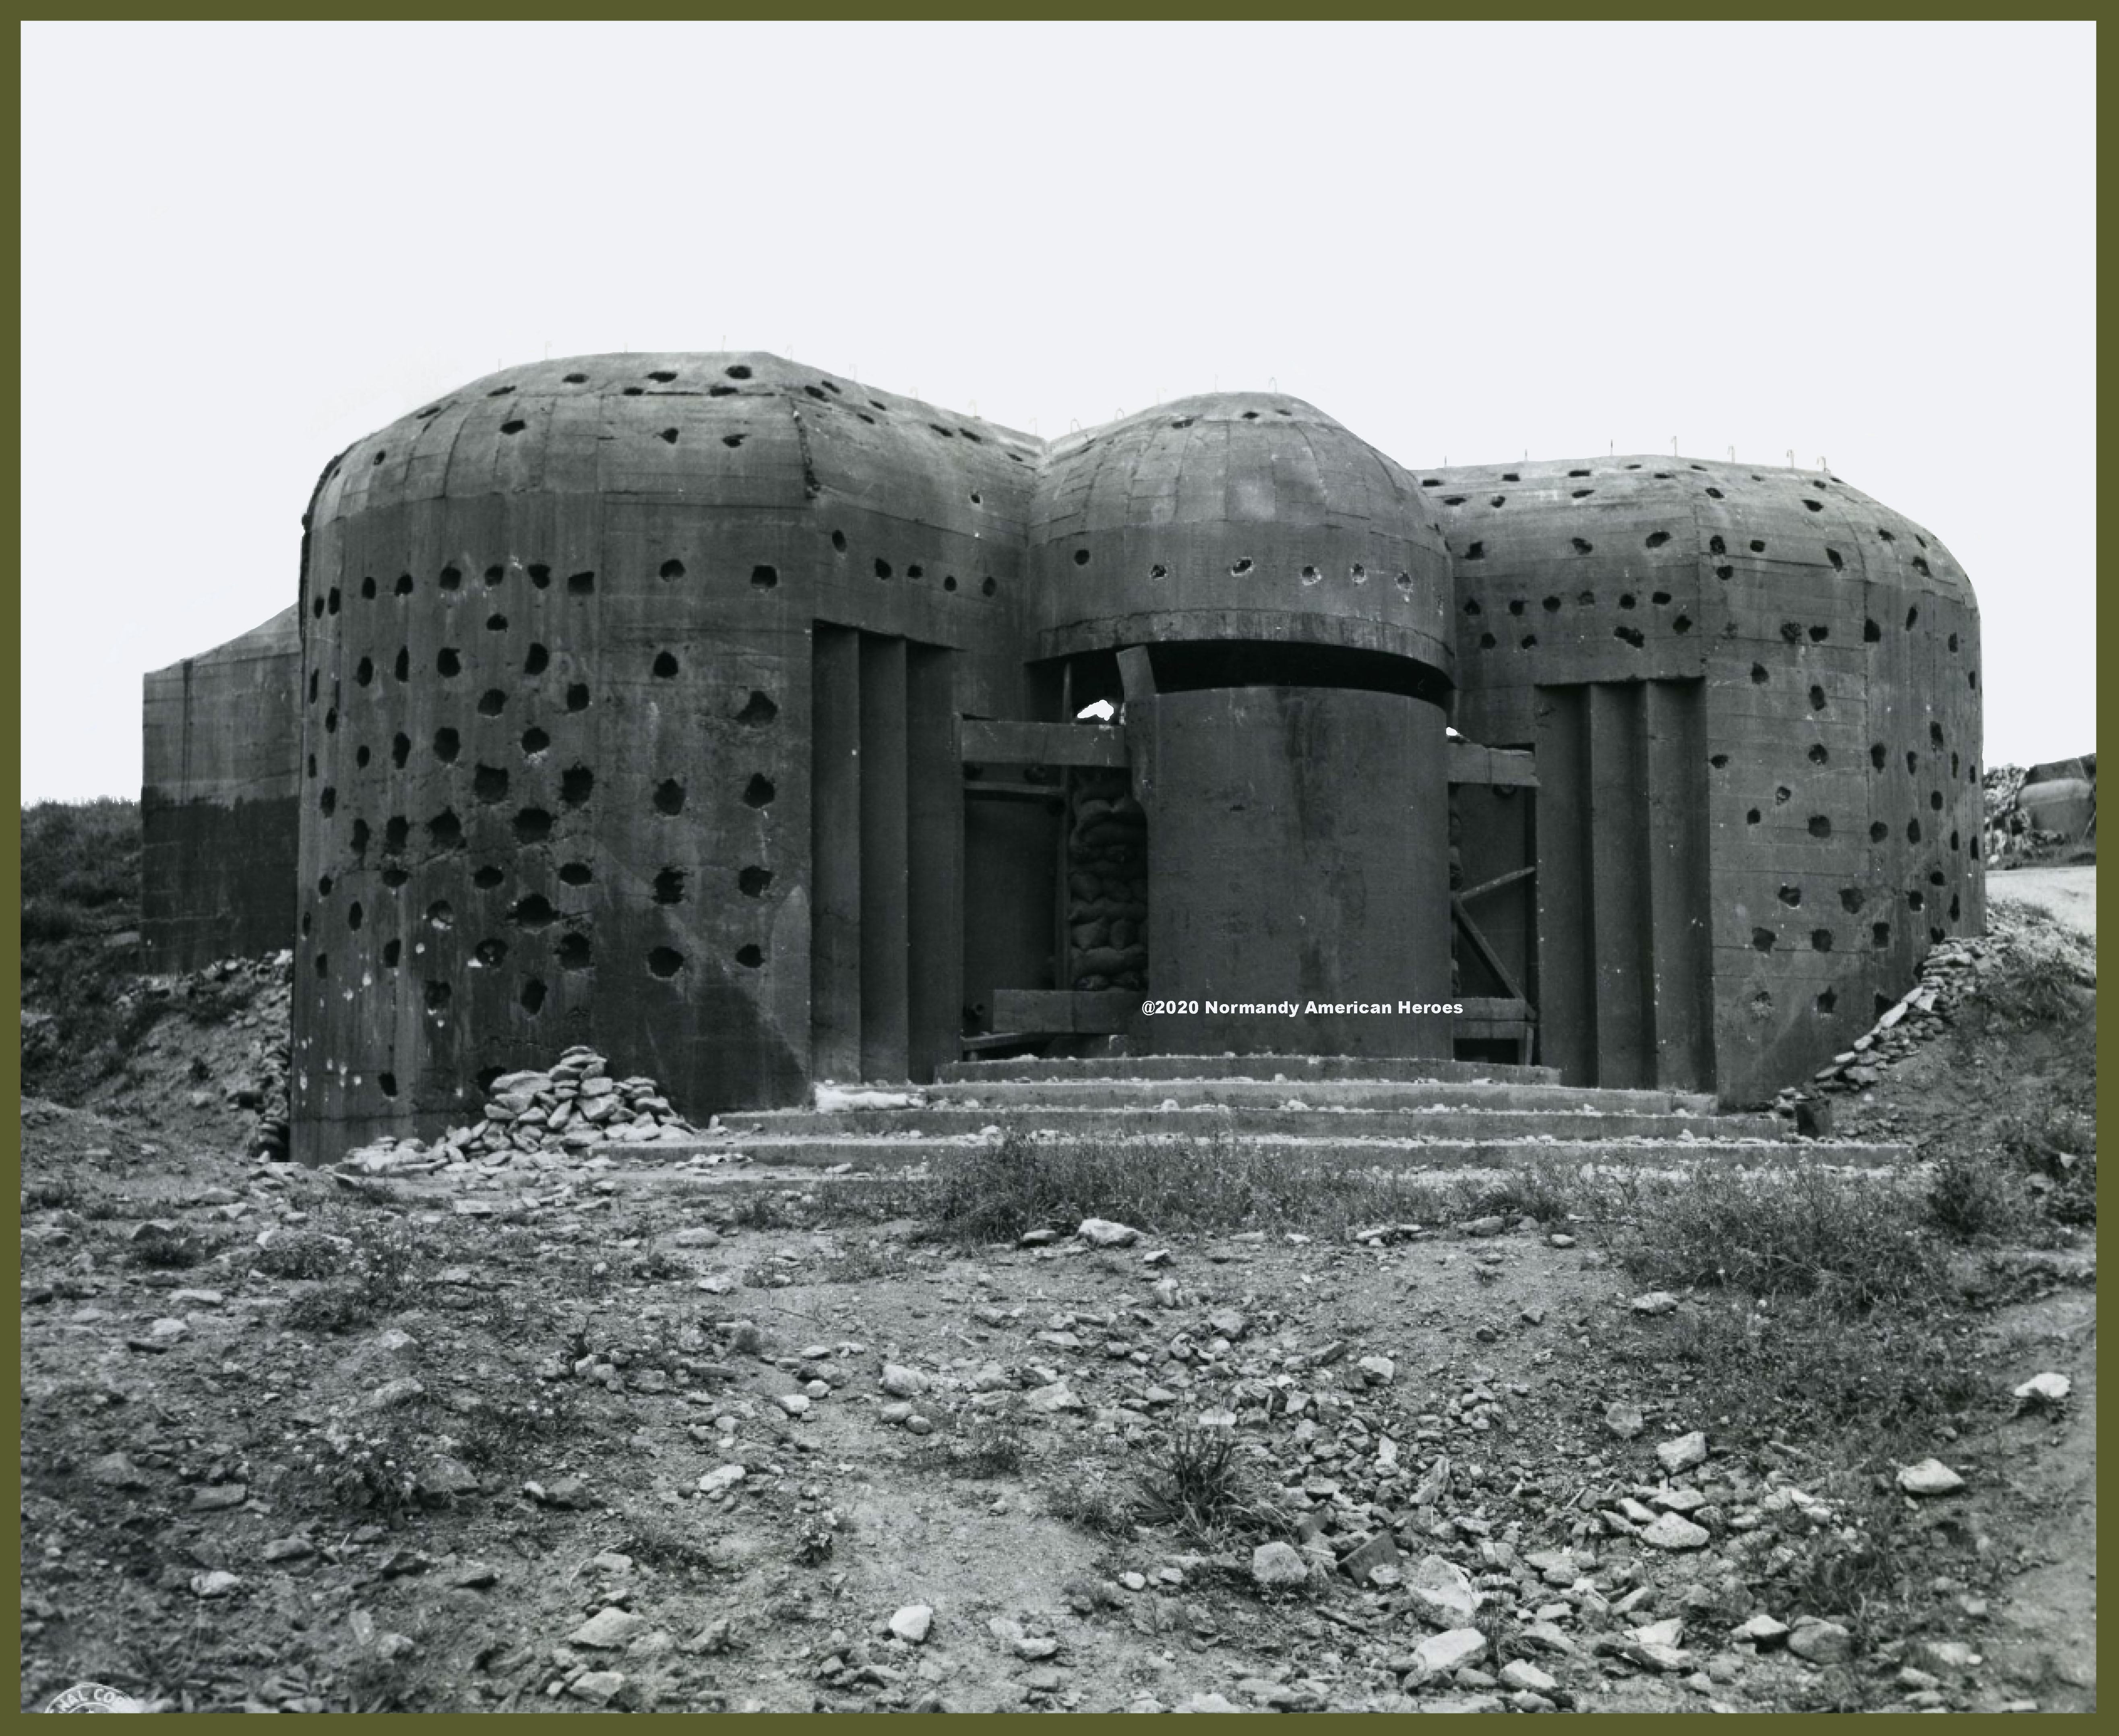 Concrete emplacement for mobile 150mm gun used by the Germans in their coastal defenses at Equeurdreville, France